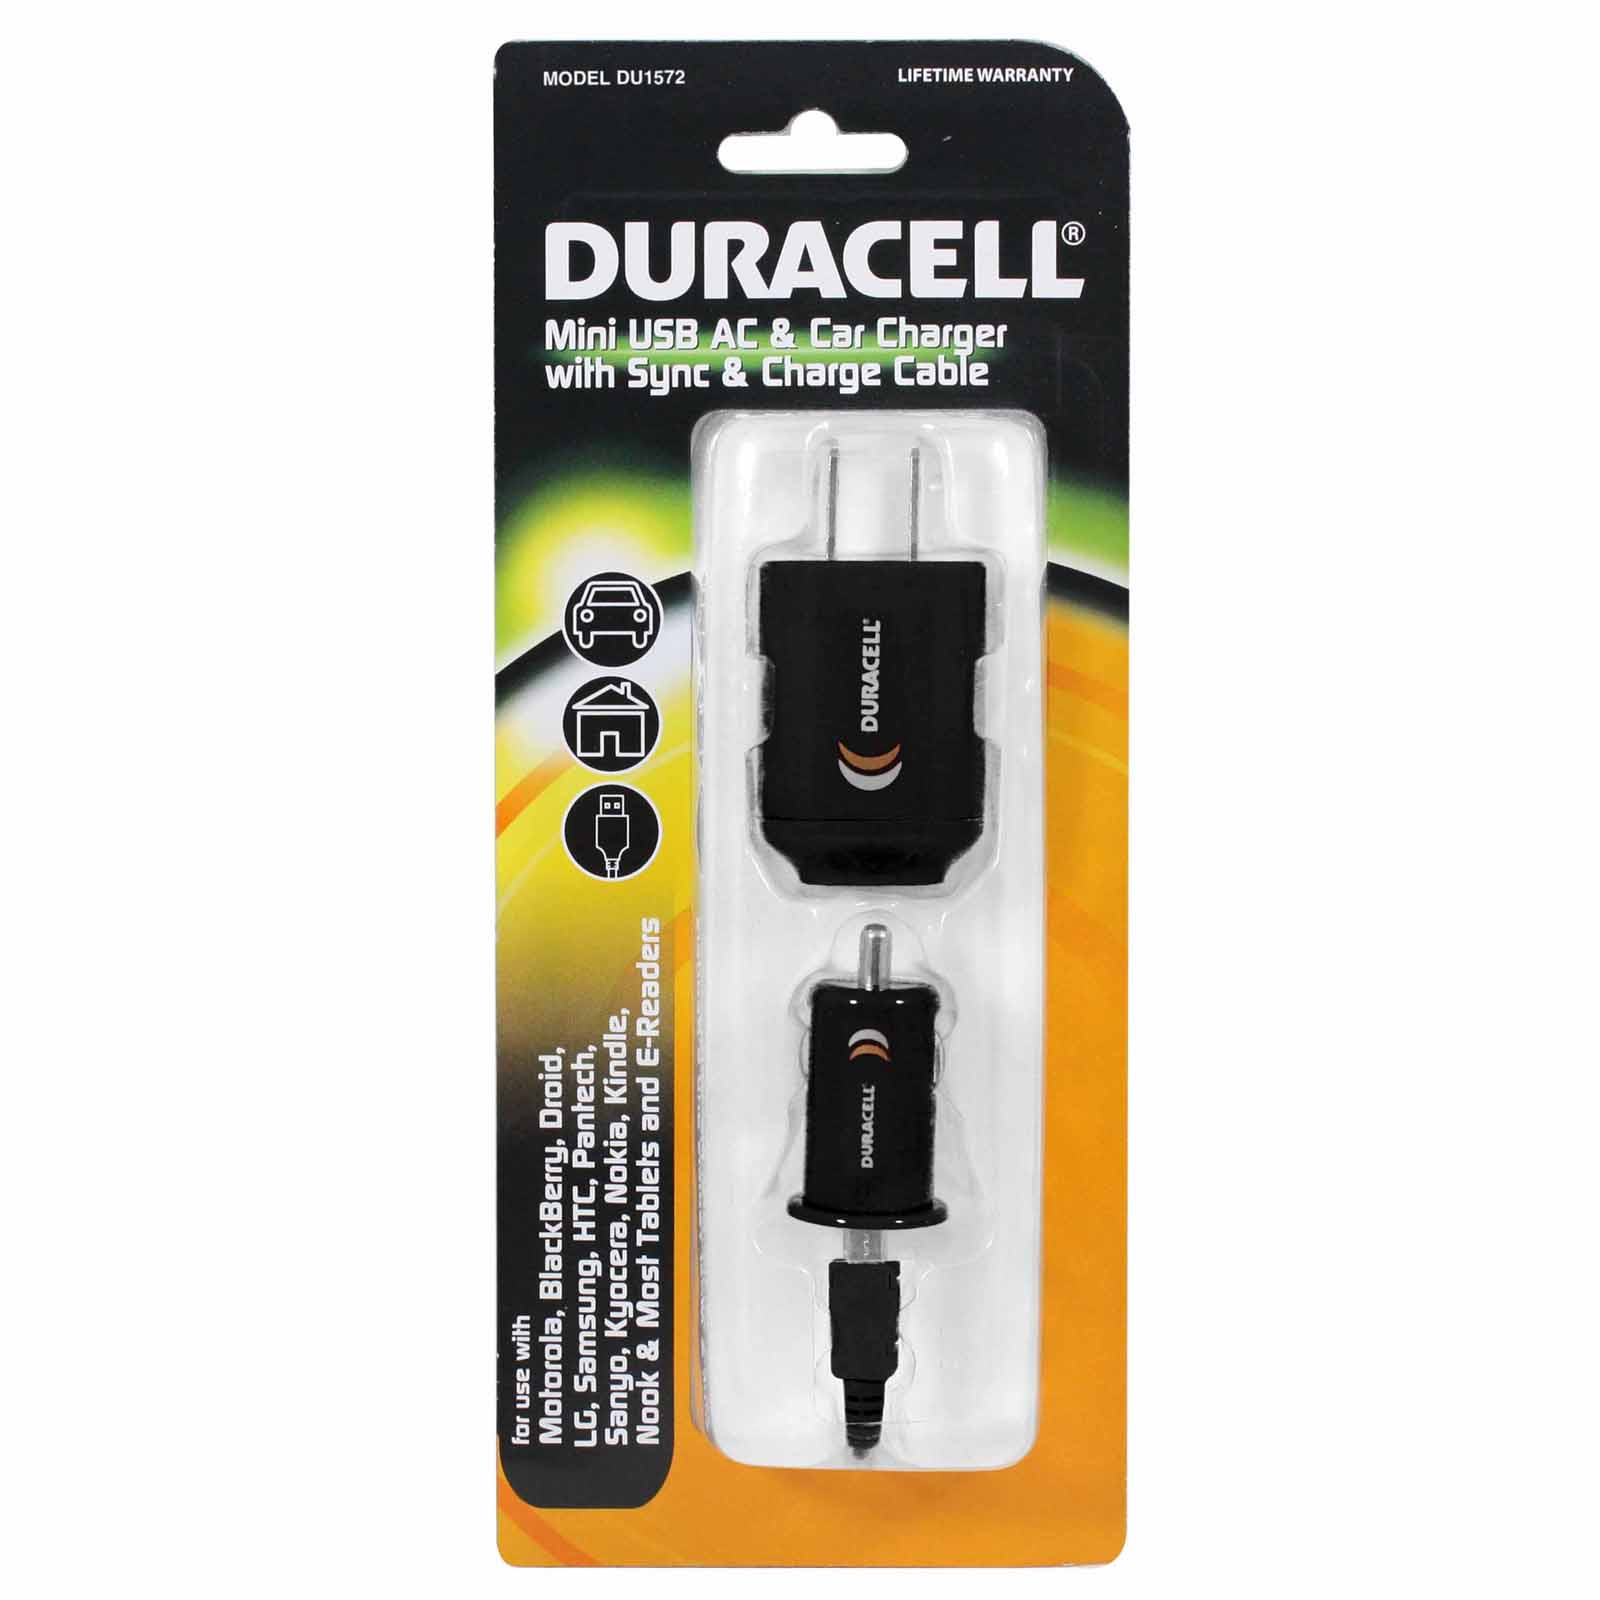 Duracell Mini USB AC & Car Charger with Sync & Charge Cable DU1572